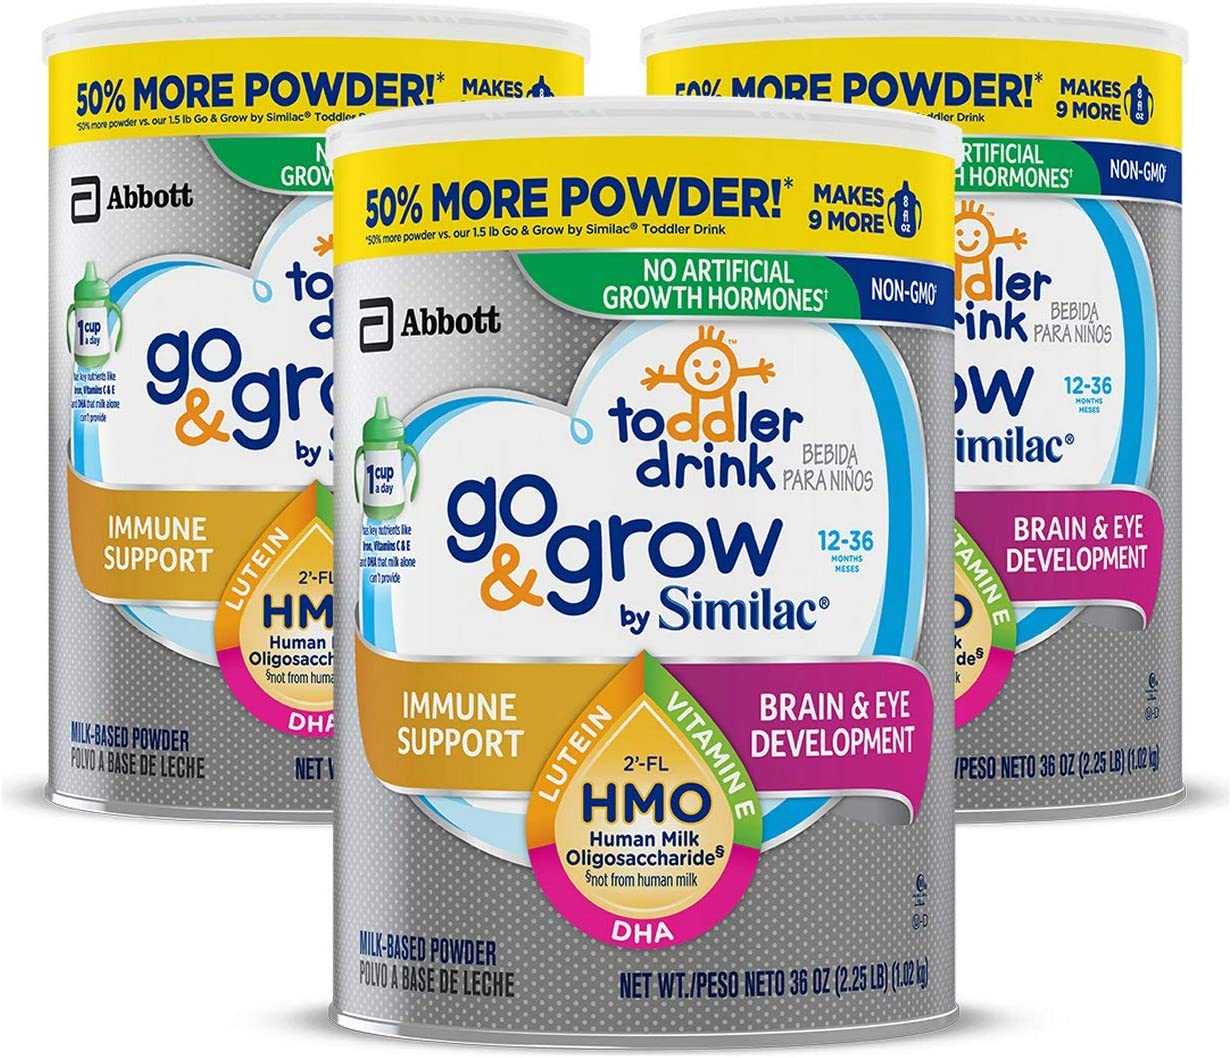 Go & Grow by Similac Toddler Drink - 3 x 36oz